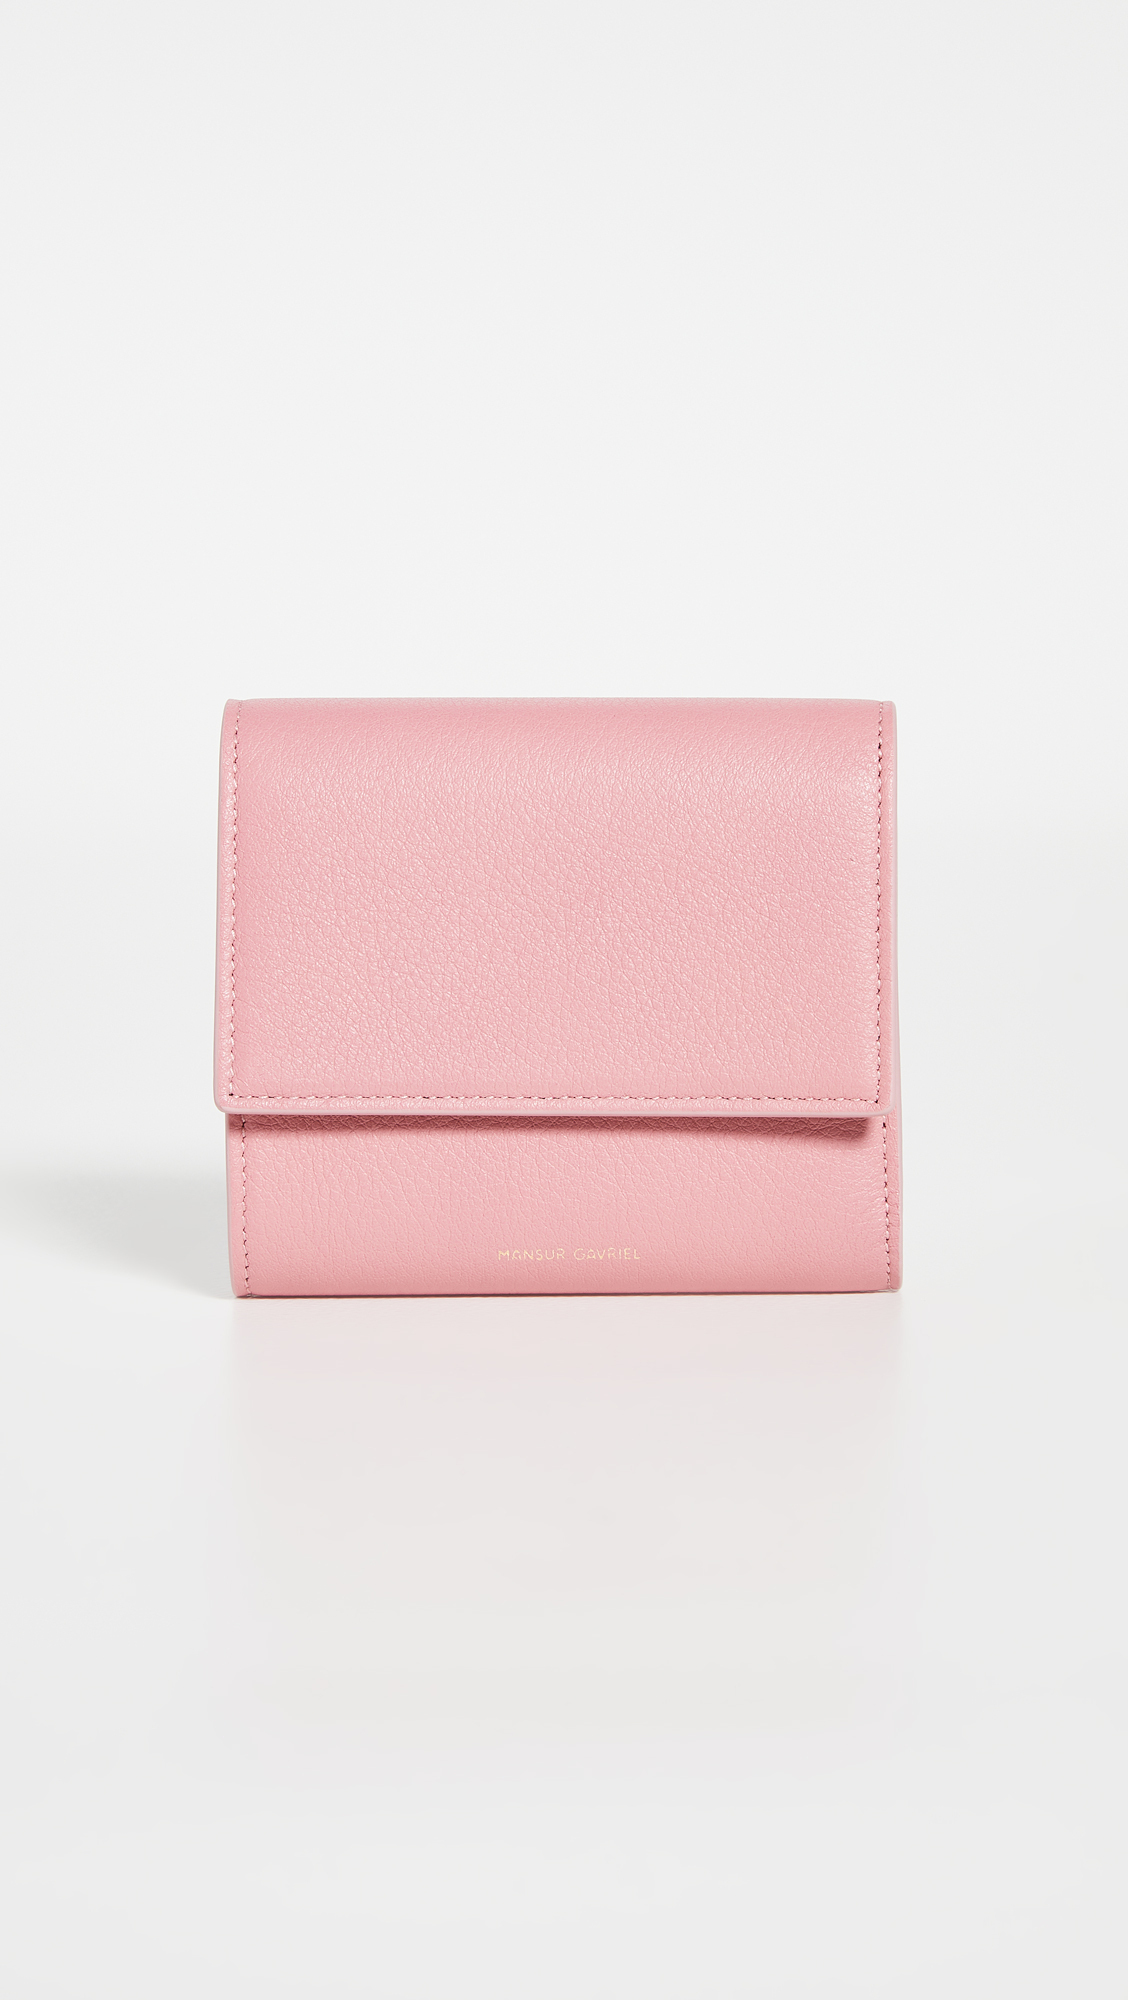 shop mansur gavriel accessories